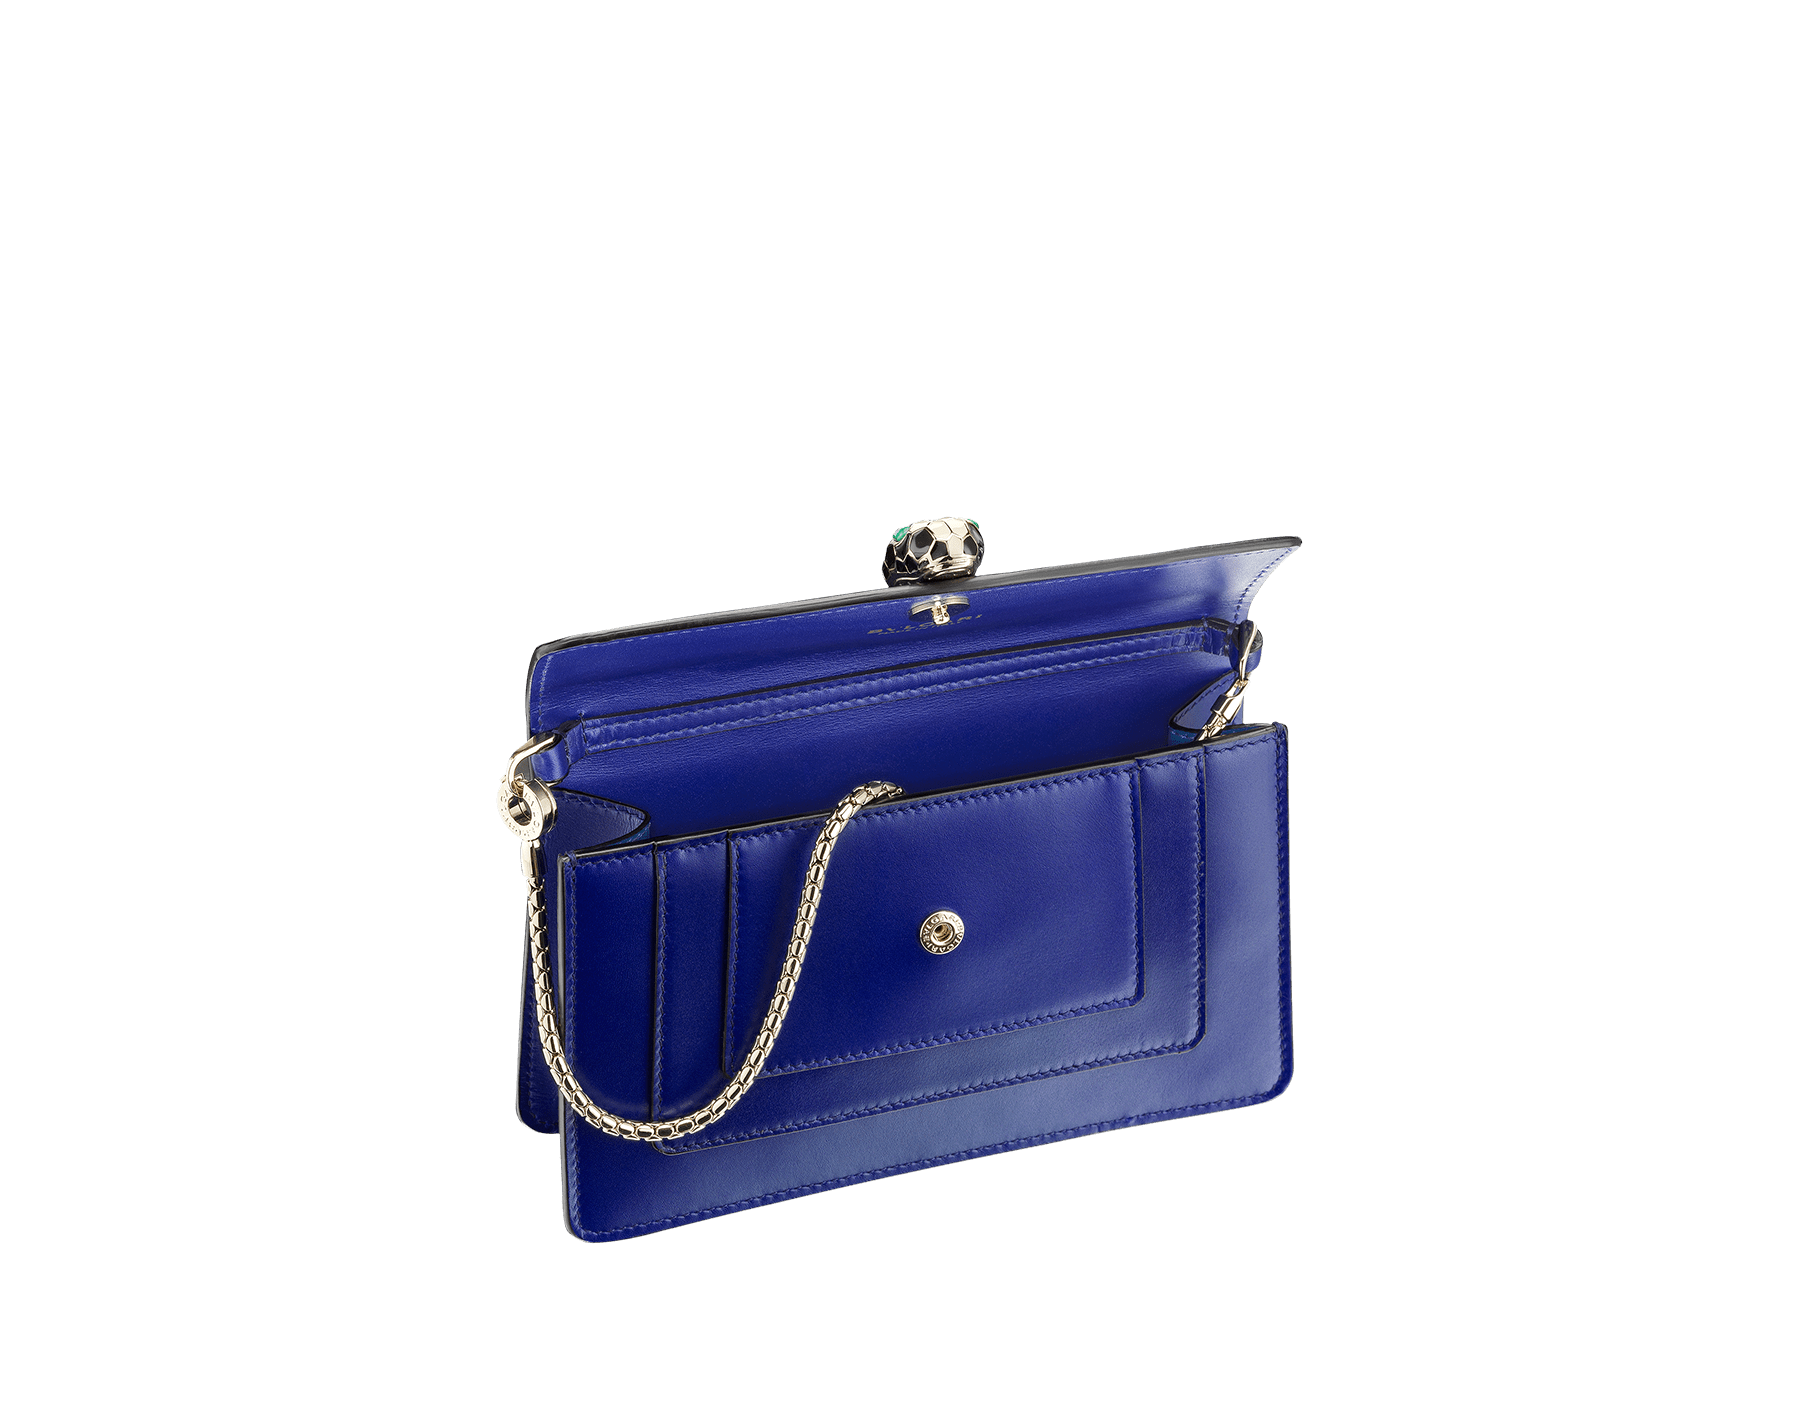 Mini Serpenti Forever bag in royal sapphire calf leather and teal topaz calf leather lining. Brass light gold plated Serpenti head stud closure in black and white enamel with malachite eyes. 283239 image 2